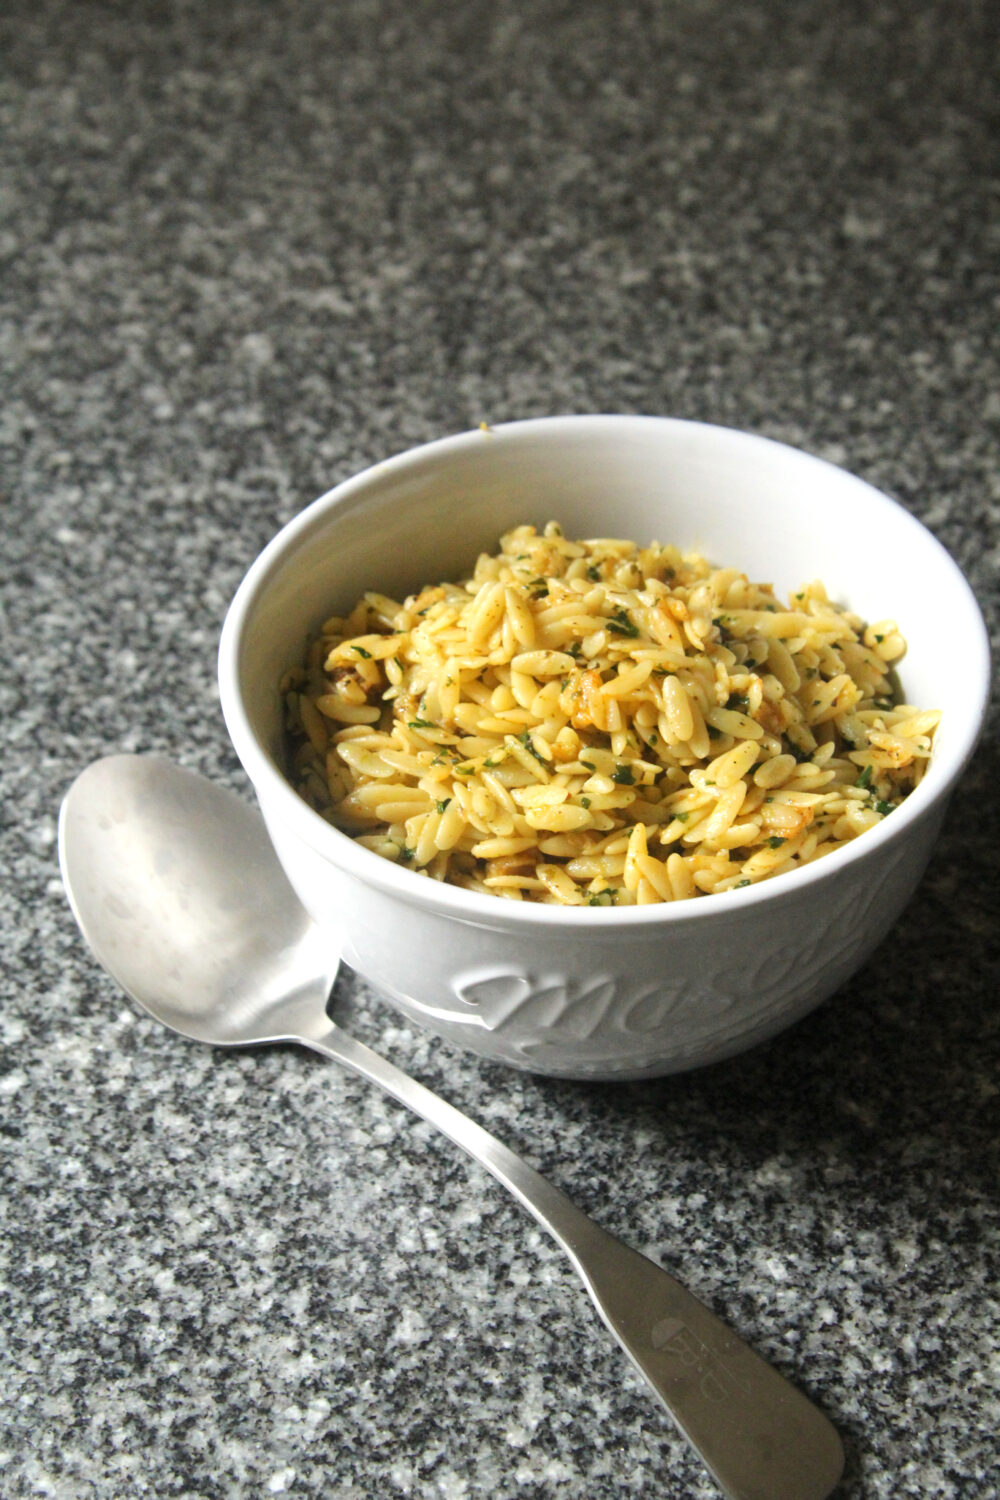 A white bowl holds yellow-ish lemon butter orzo on a granite countertop. A silver serving spoon sits nearby.